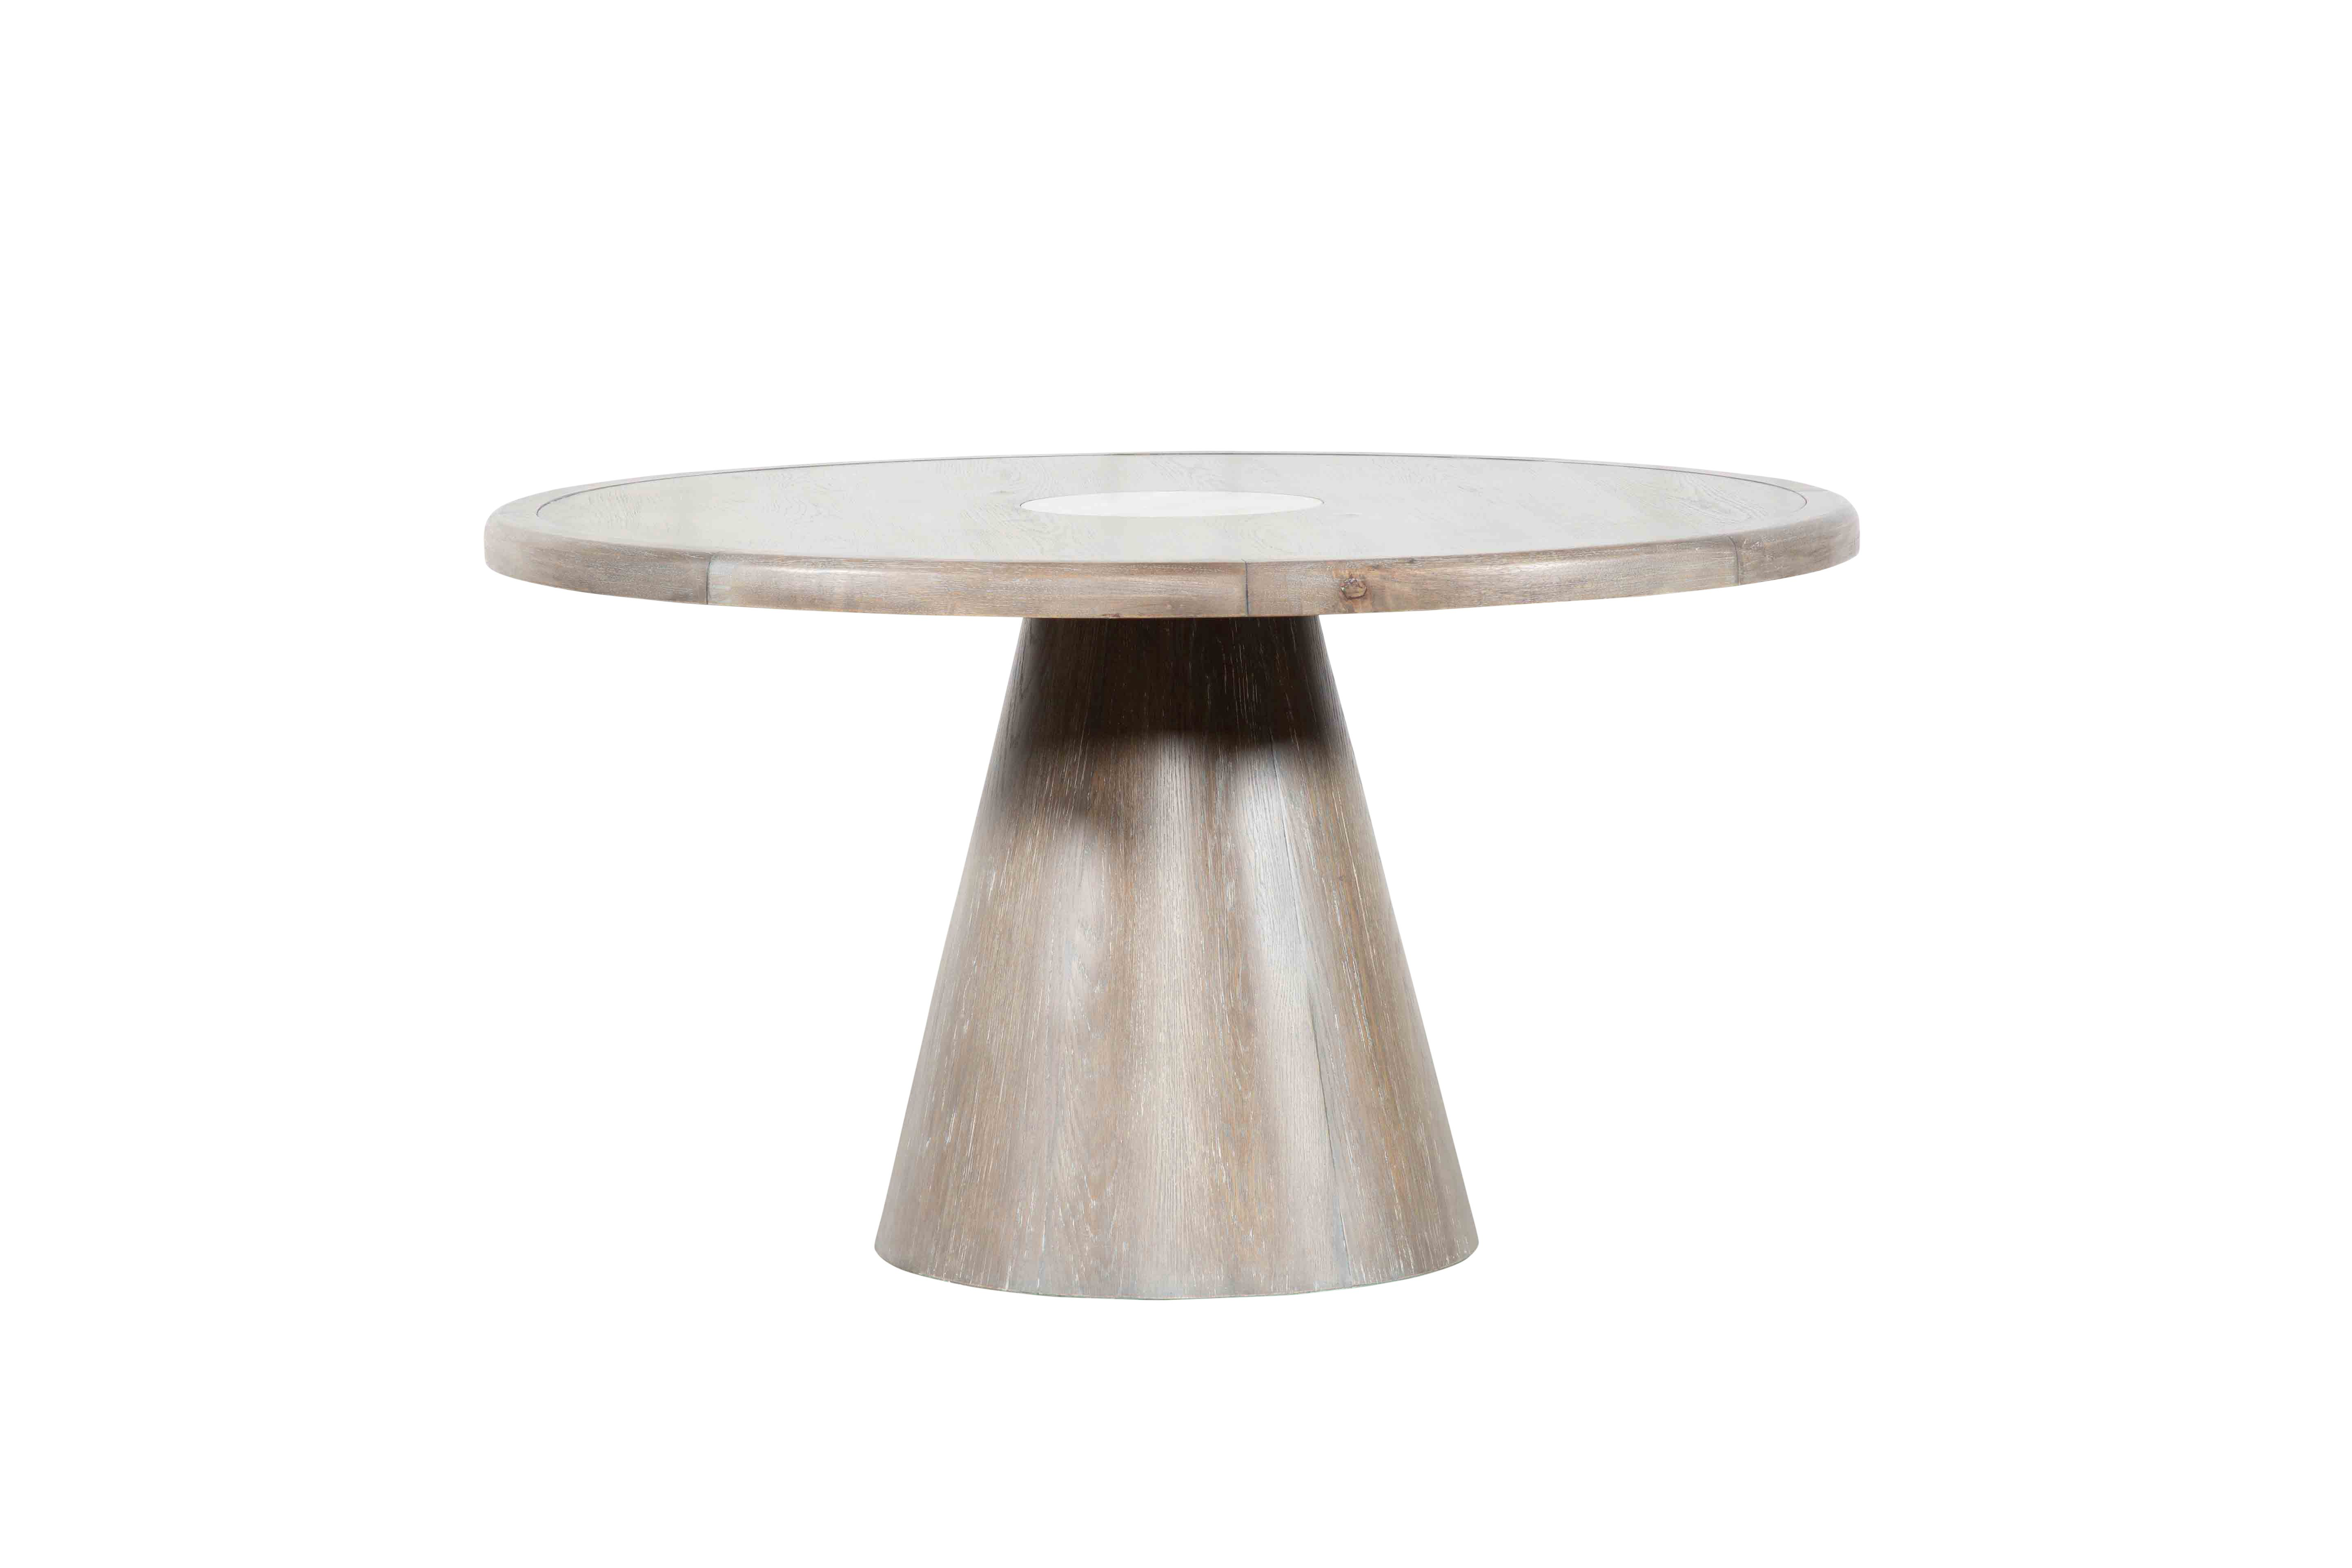 Nate Berkus and Jeremiah Brent for Living Spaces Pavilion Round Dining Table